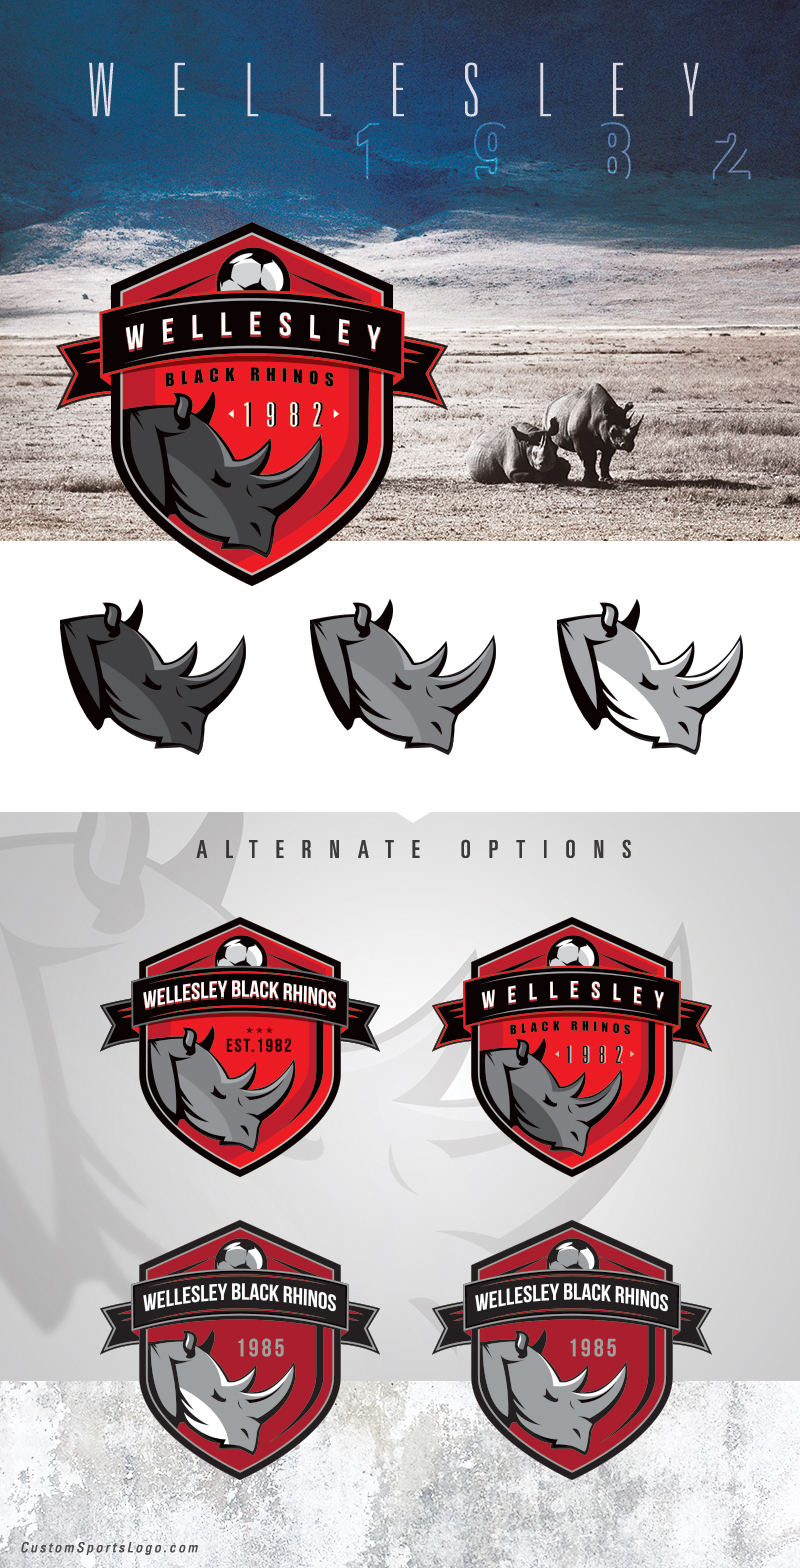 custom-soccer-logo-design-options-for-wellesley-black-rhinos.jpg